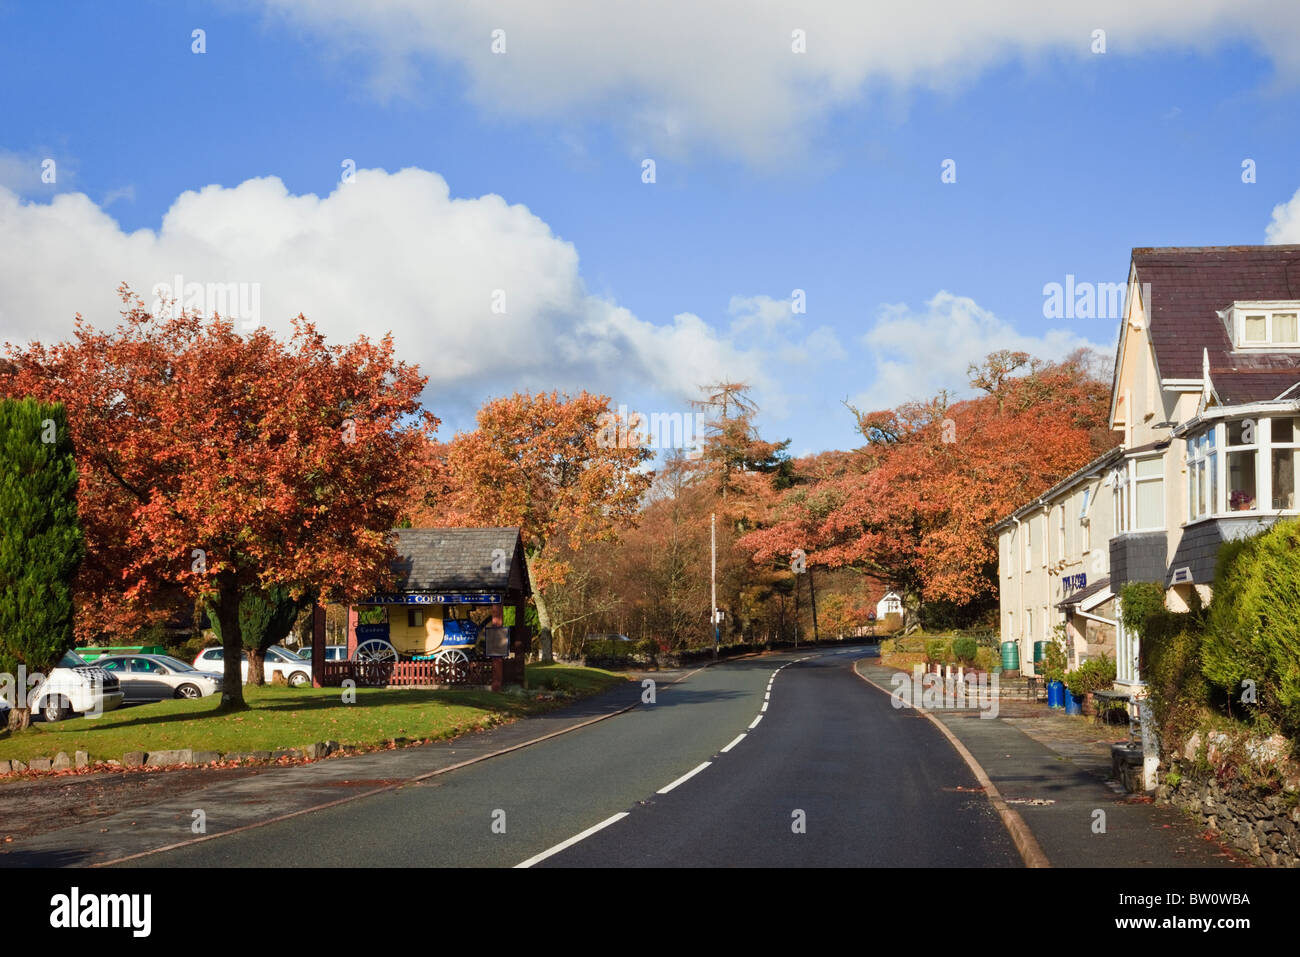 A5 road and Tyn-Y-Coed Inn on Thomas Telford's historic route in Snowdonia National Park in autumn. Capel Curig, - Stock Image